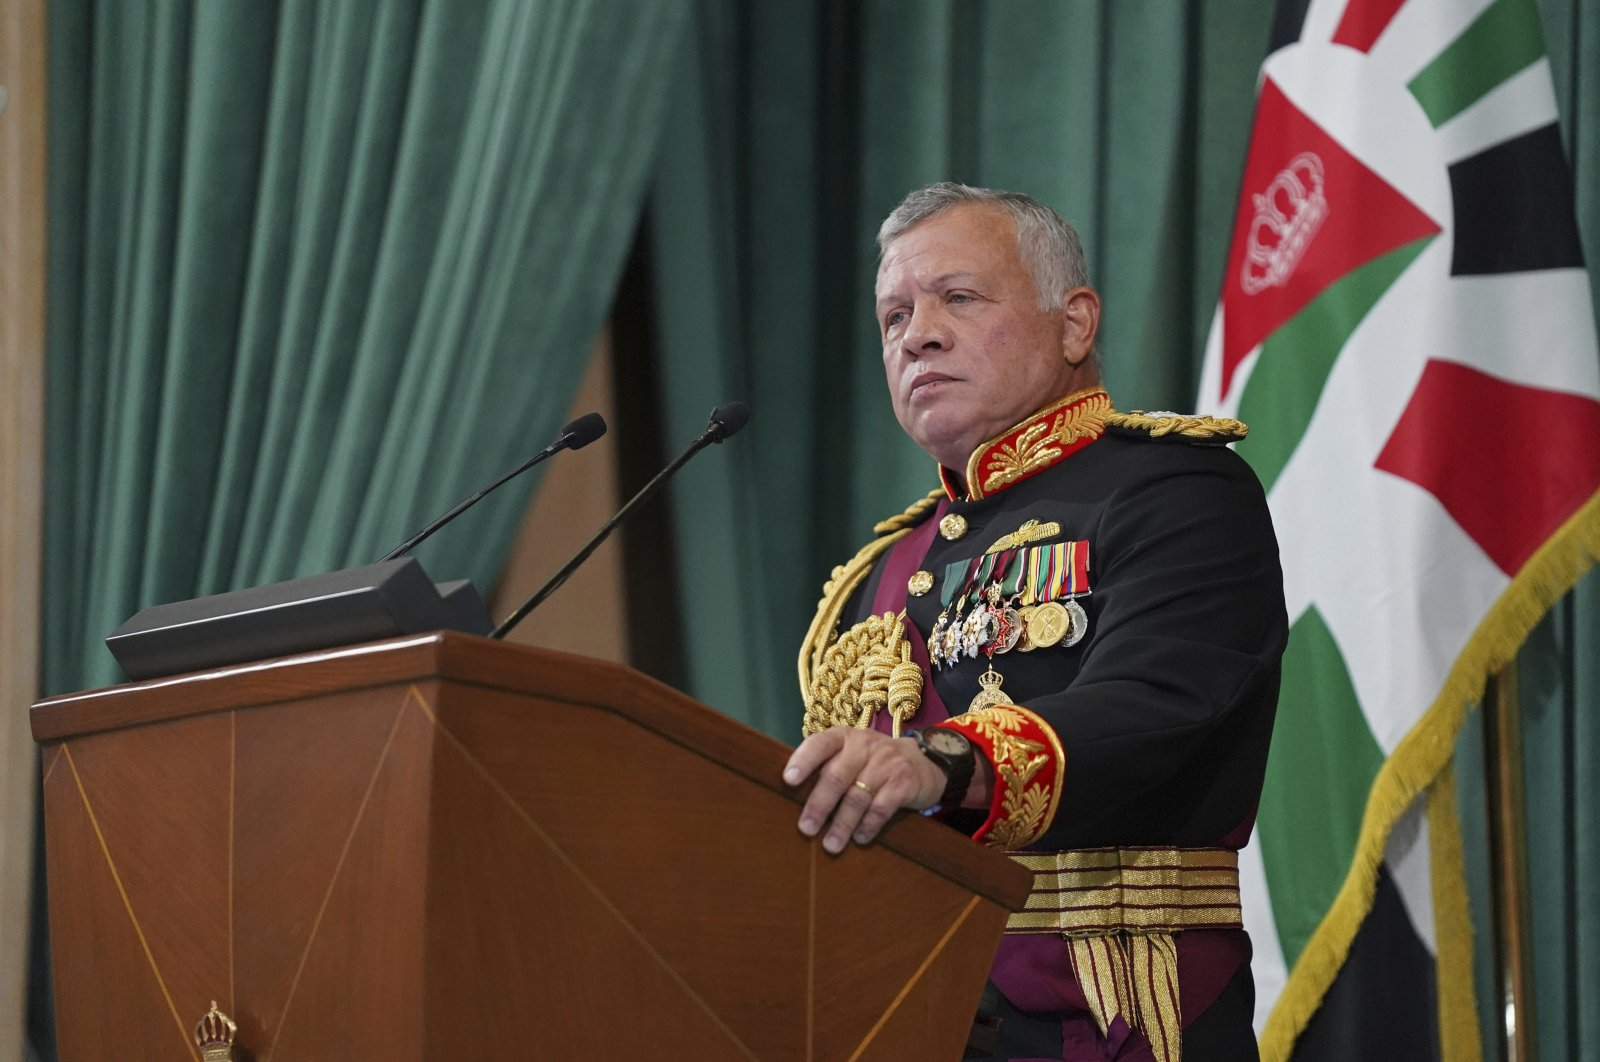 In this photo released by the Royal Hashemite Court, Jordan's King Abdullah II gives a speech during the inauguration of the 19th Parliament's non-ordinary session, Amman, Jordan, Thursday, Dec. 10, 2020. (Yousef Allan/The Royal Hashemite Court via AP)